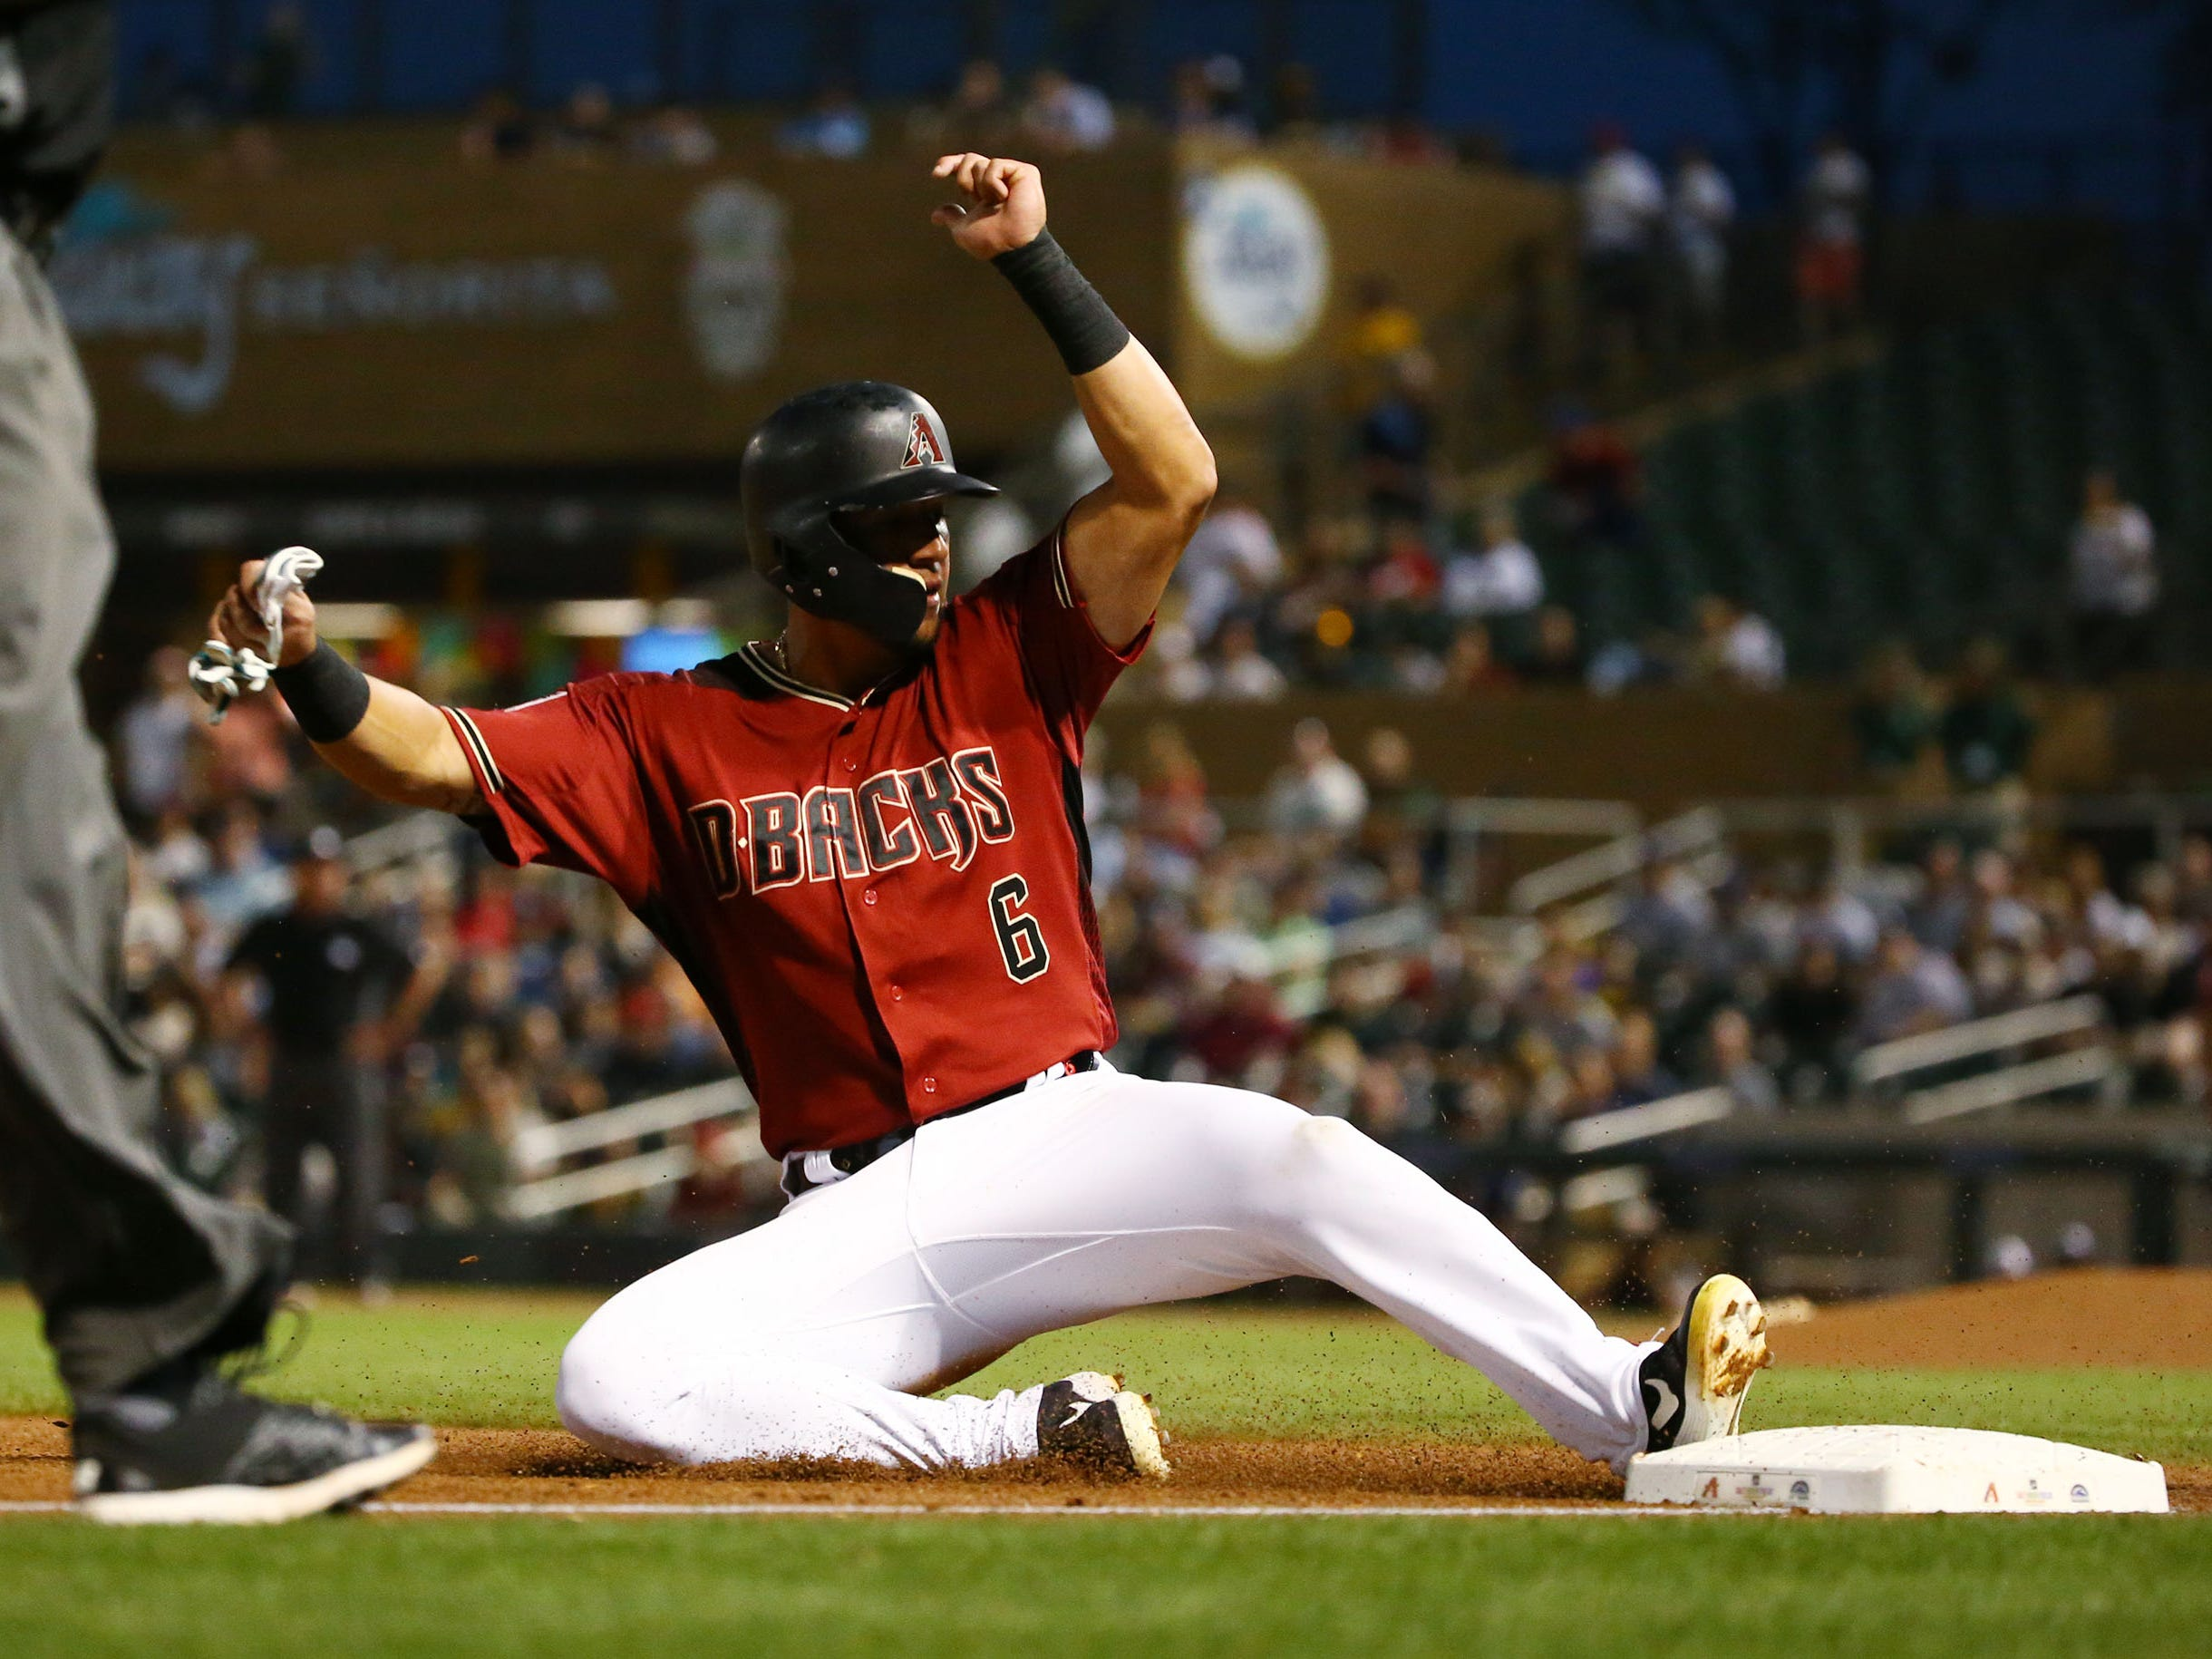 Arizona Diamondbacks David Peralta steals third base against the San Diego Padres in the first inning during a spring training game on Mar. 19, 2019 at Salt River Fields in Scottsdale, Ariz.